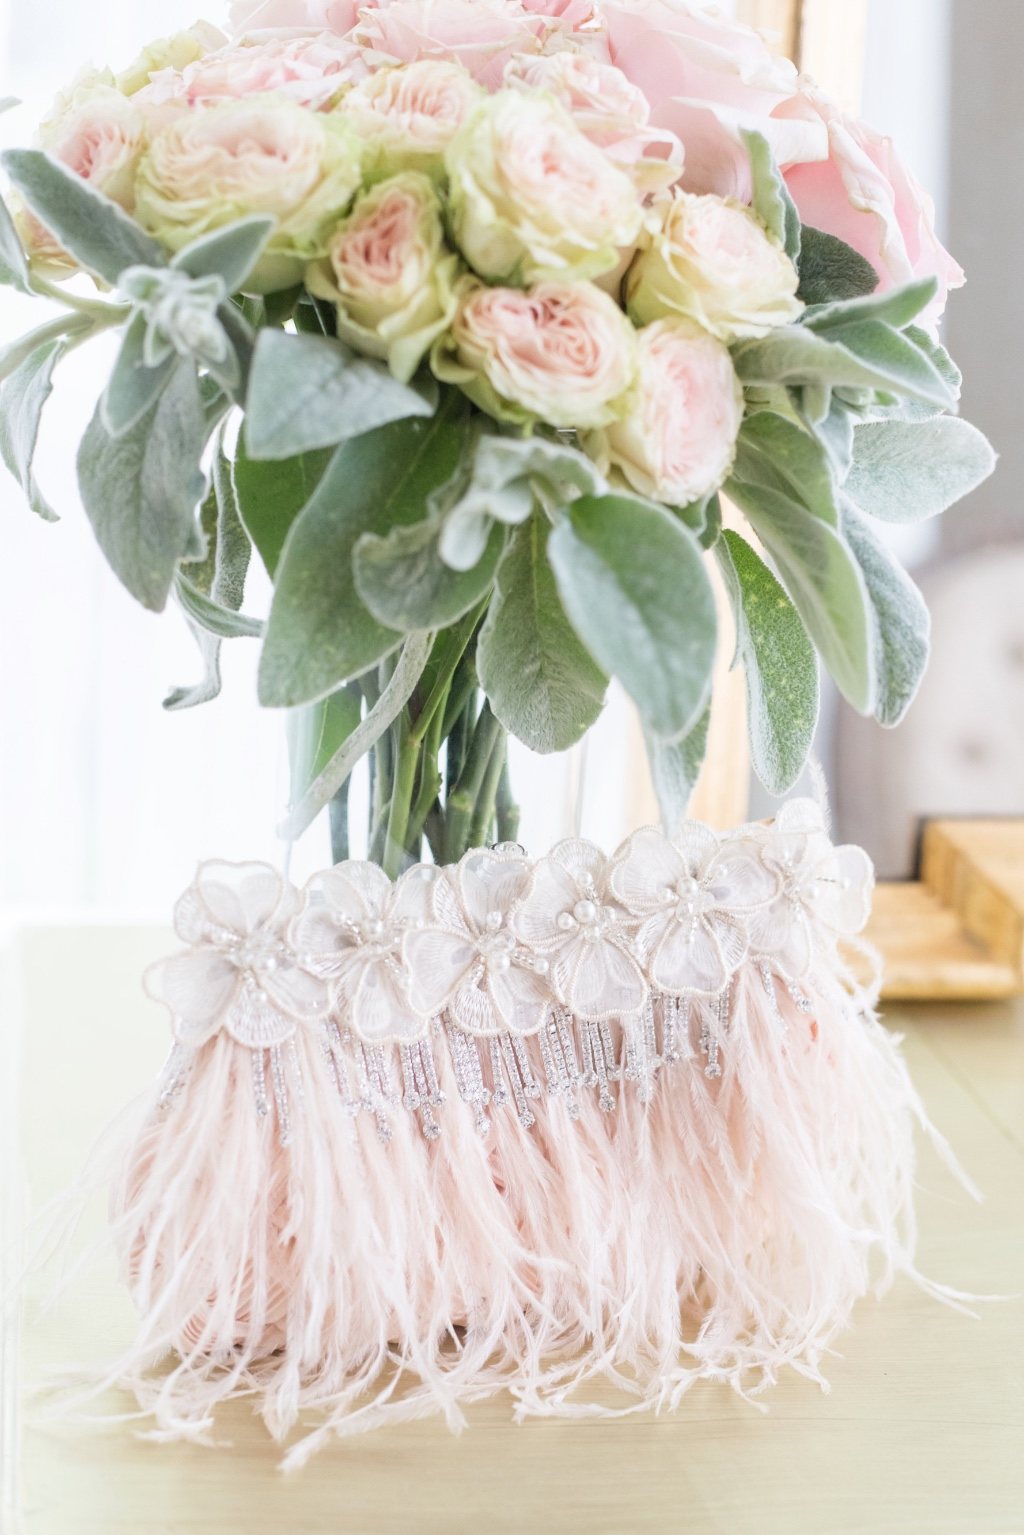 Blush feathers is always a glamorous finishing touch